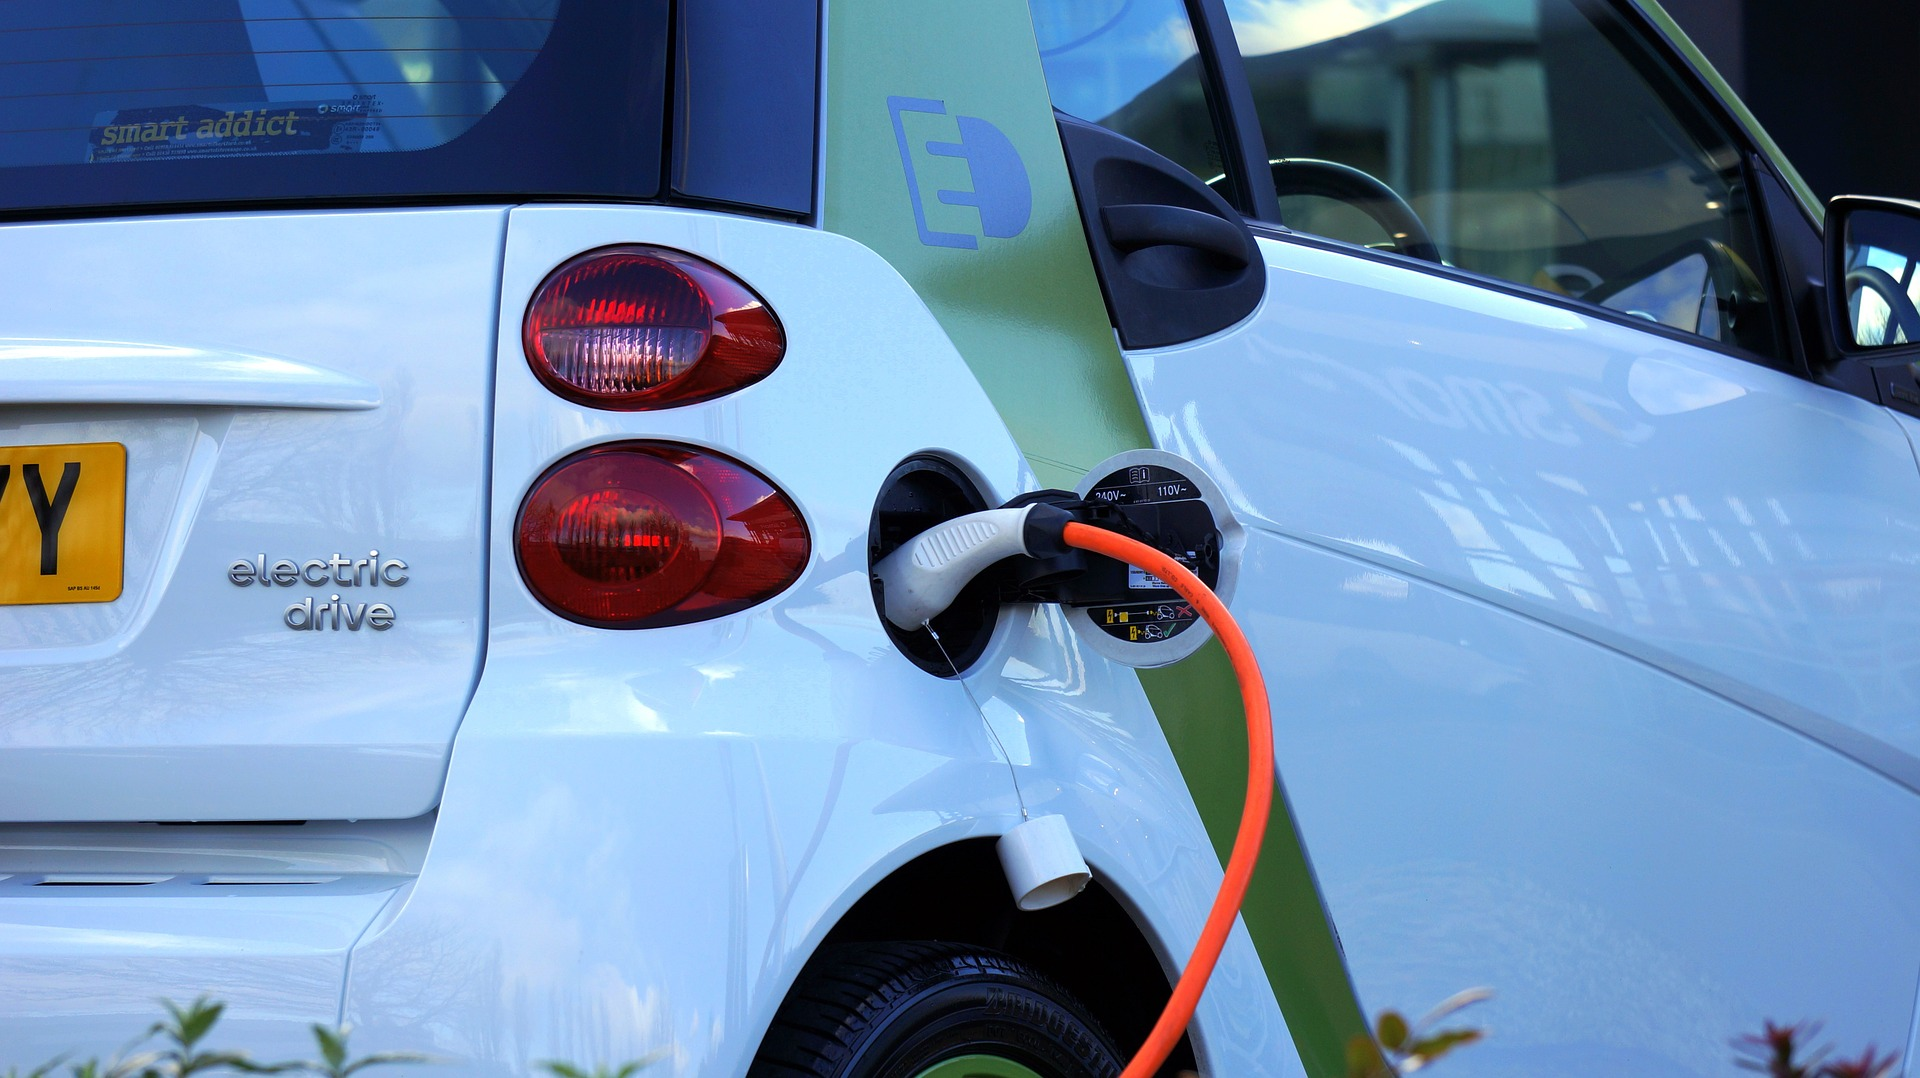 Howard County Bill Calls For New Homes to Support Electric Vehicle Charging